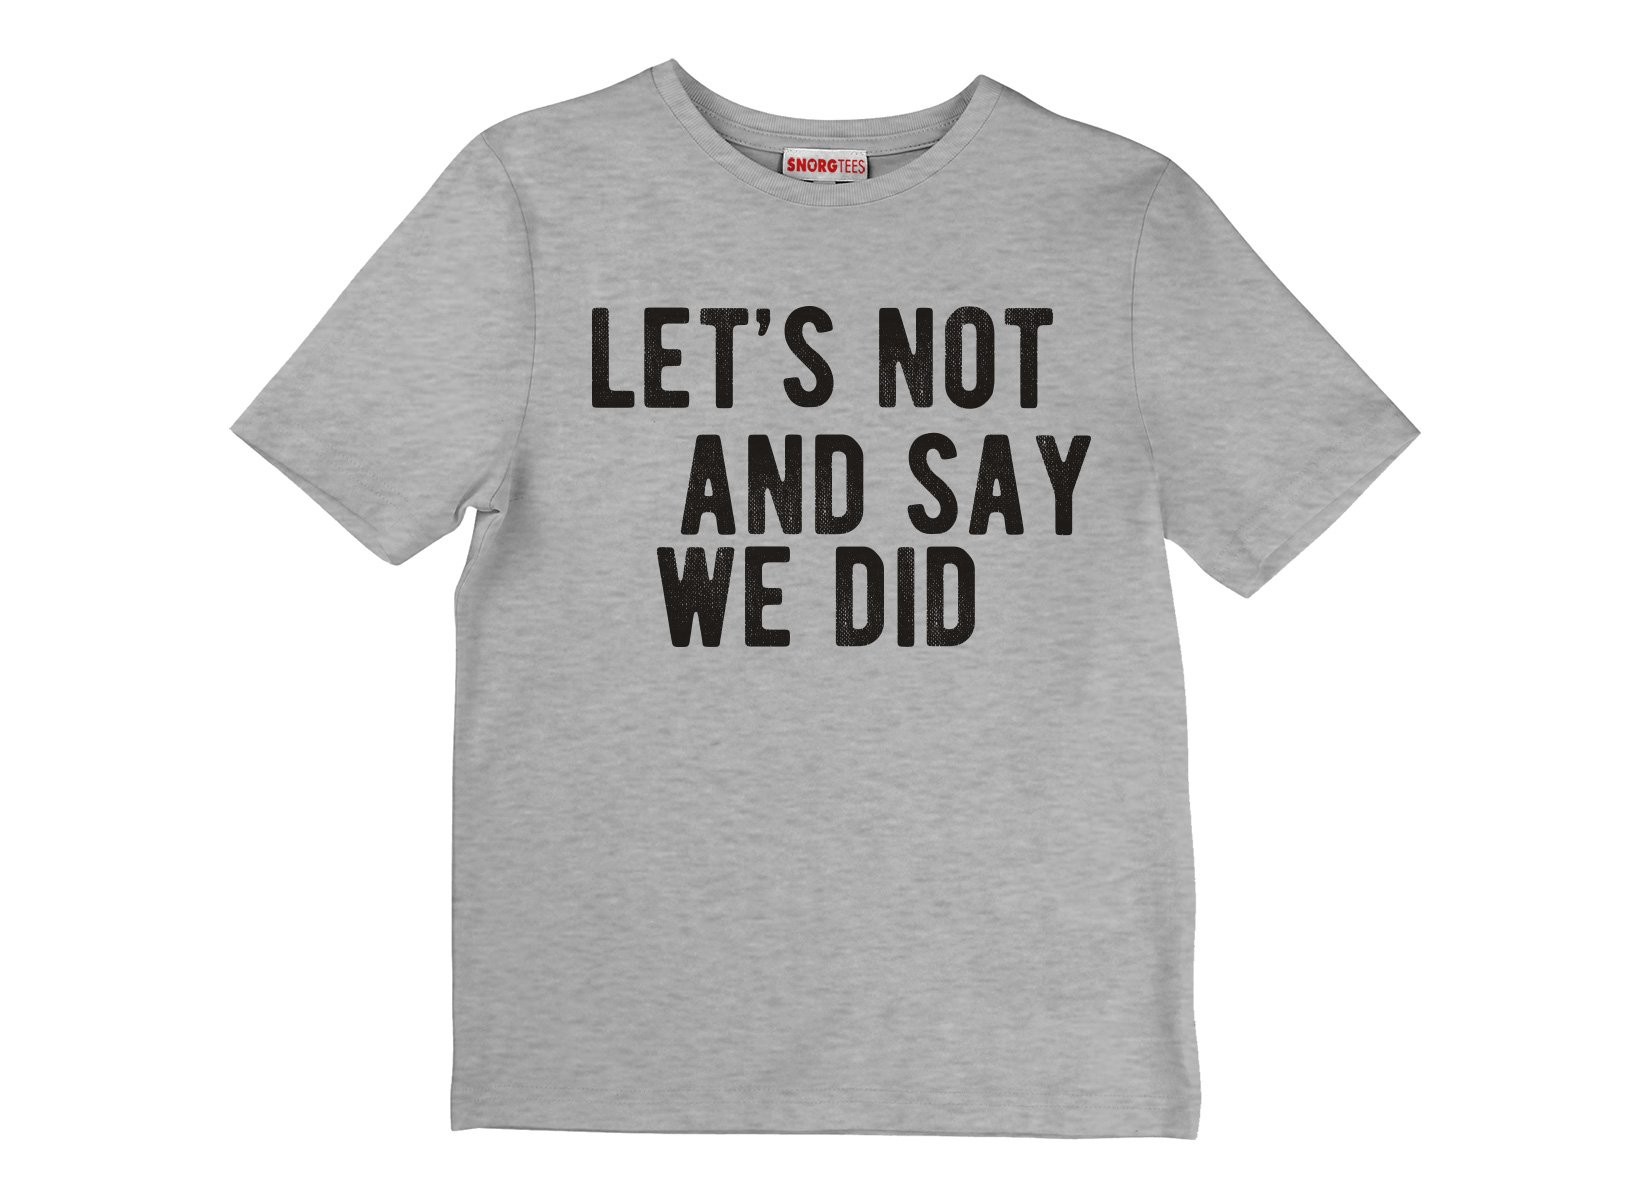 Let's Not And Say We Did on Kids T-Shirt